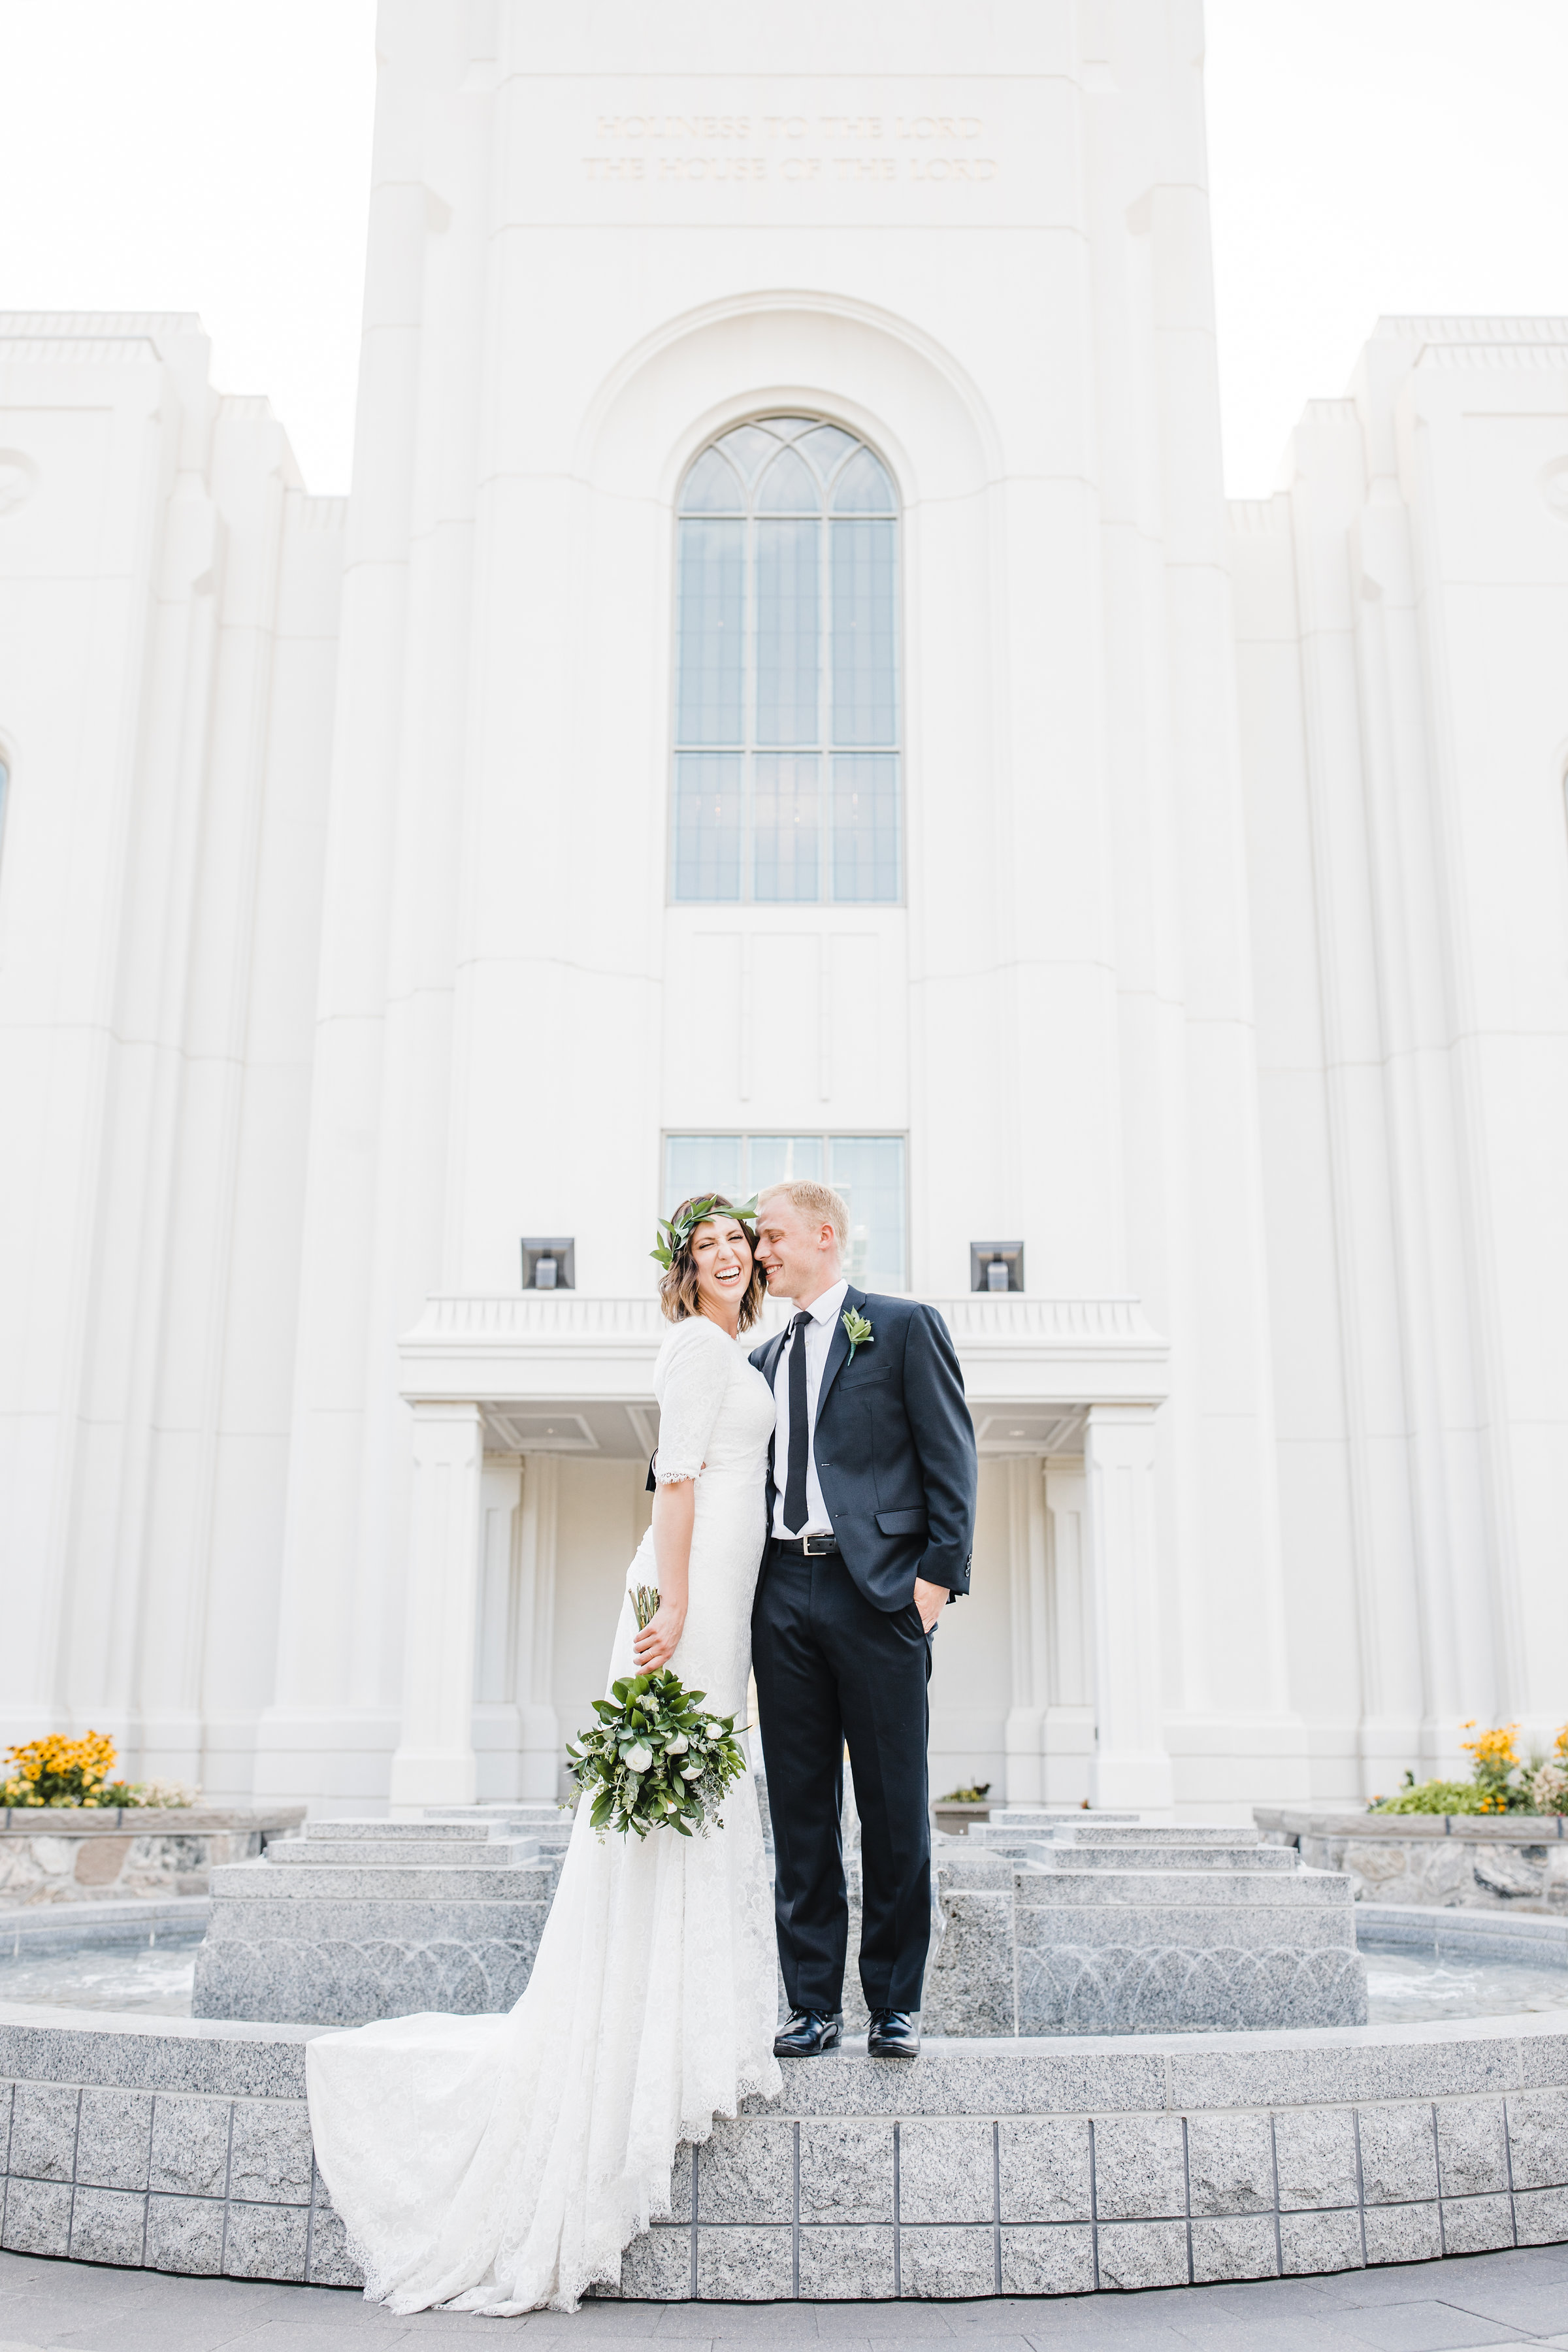 wedding photographer in brigham city utah lds temple floral crown white flowers happy laughing fountain